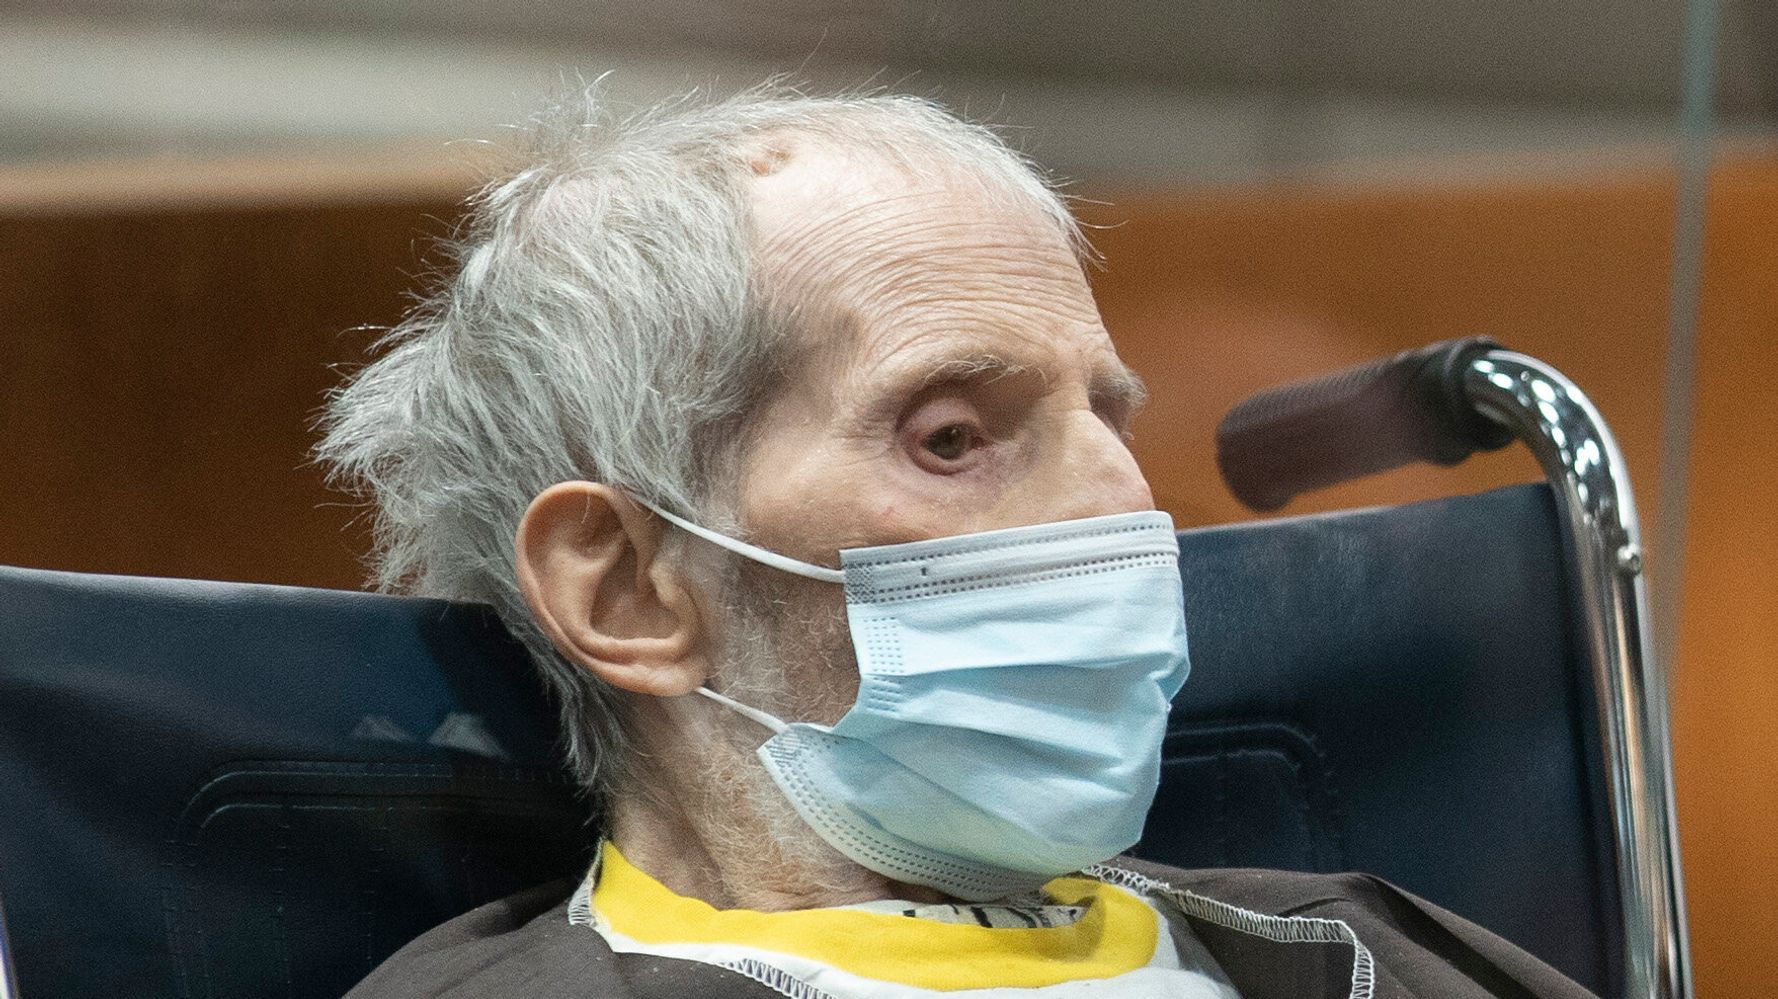 Robert Durst Is On A Ventilator With COVID-19: Reports